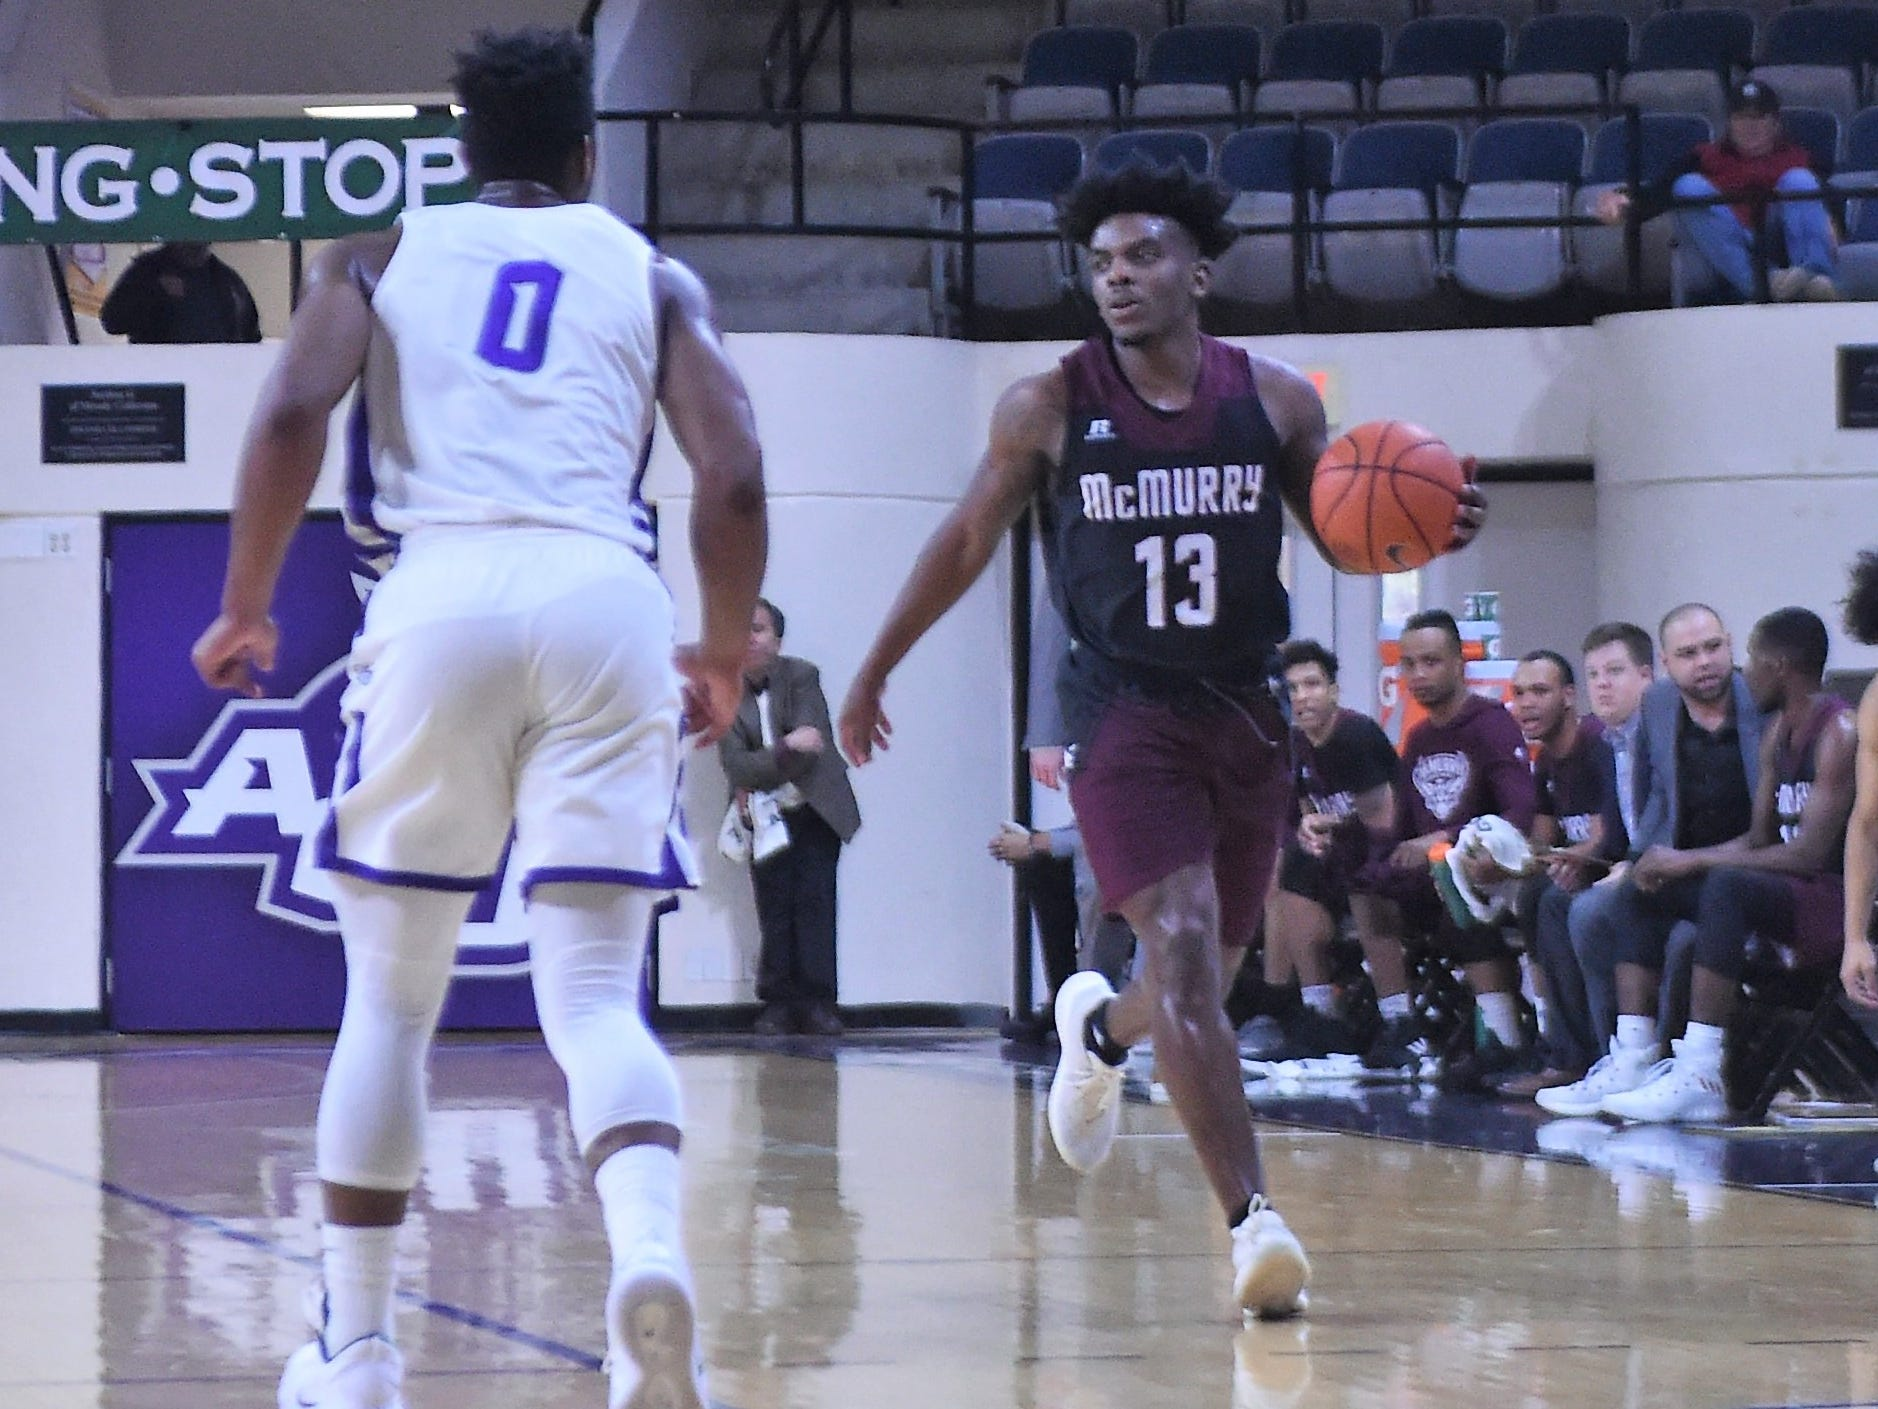 McMurry's Zacc Carter (13) brings the ball down the court during Saturday's game against ACU at Moody Coliseum.